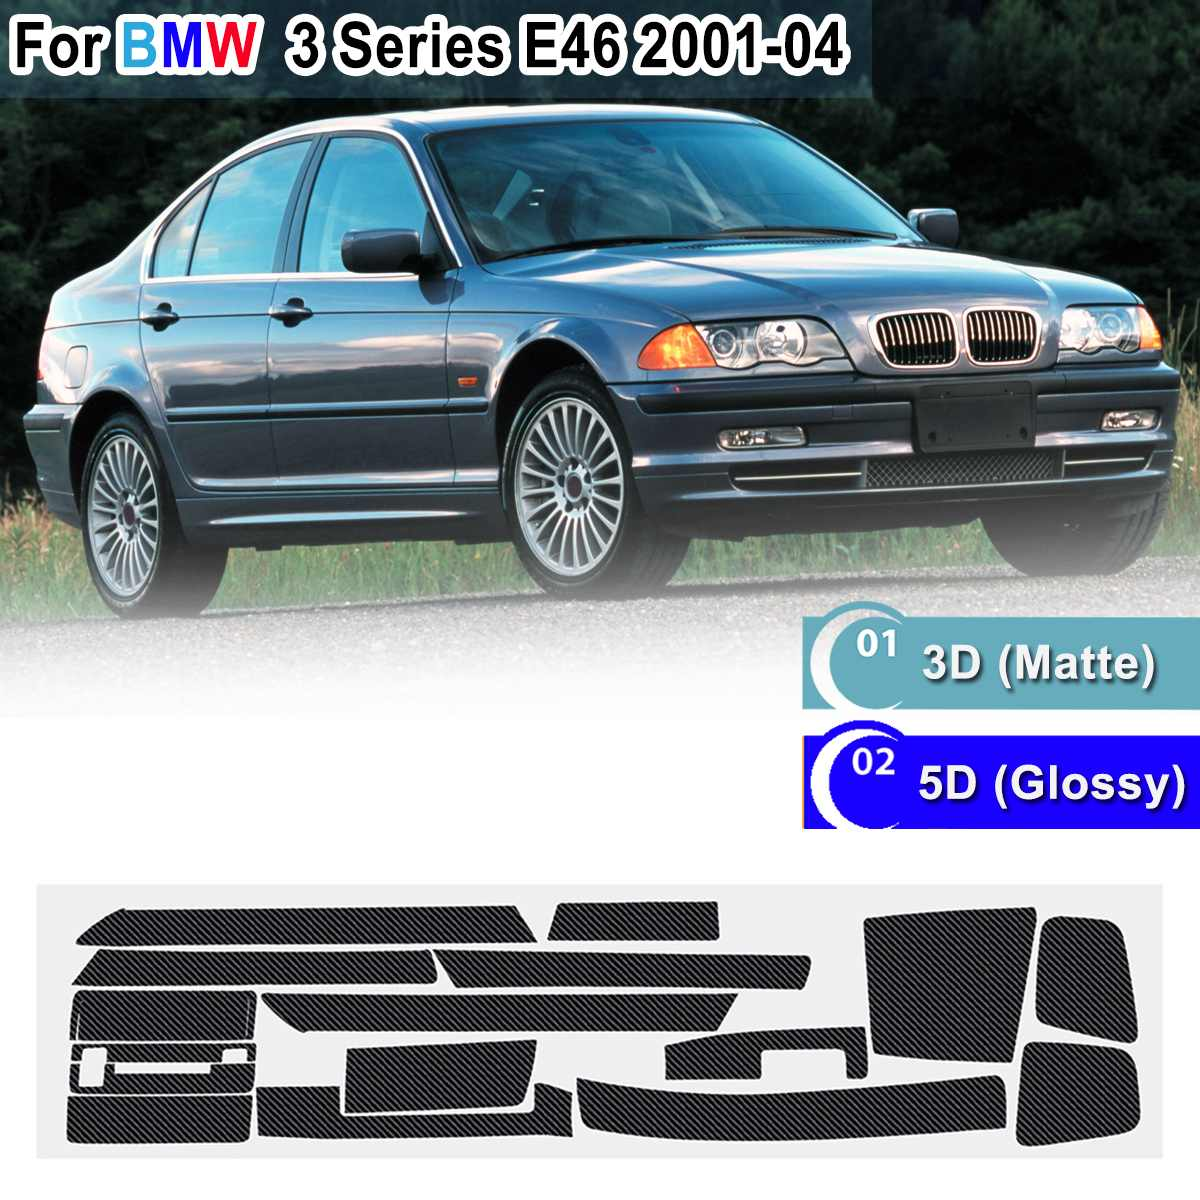 18pcs RHD 5D Glossy/ 3D Matte Carbon Fiber Pattern Interior Sticker Vinyl Decal Trim For BMW 3 Series E46 2001-2004